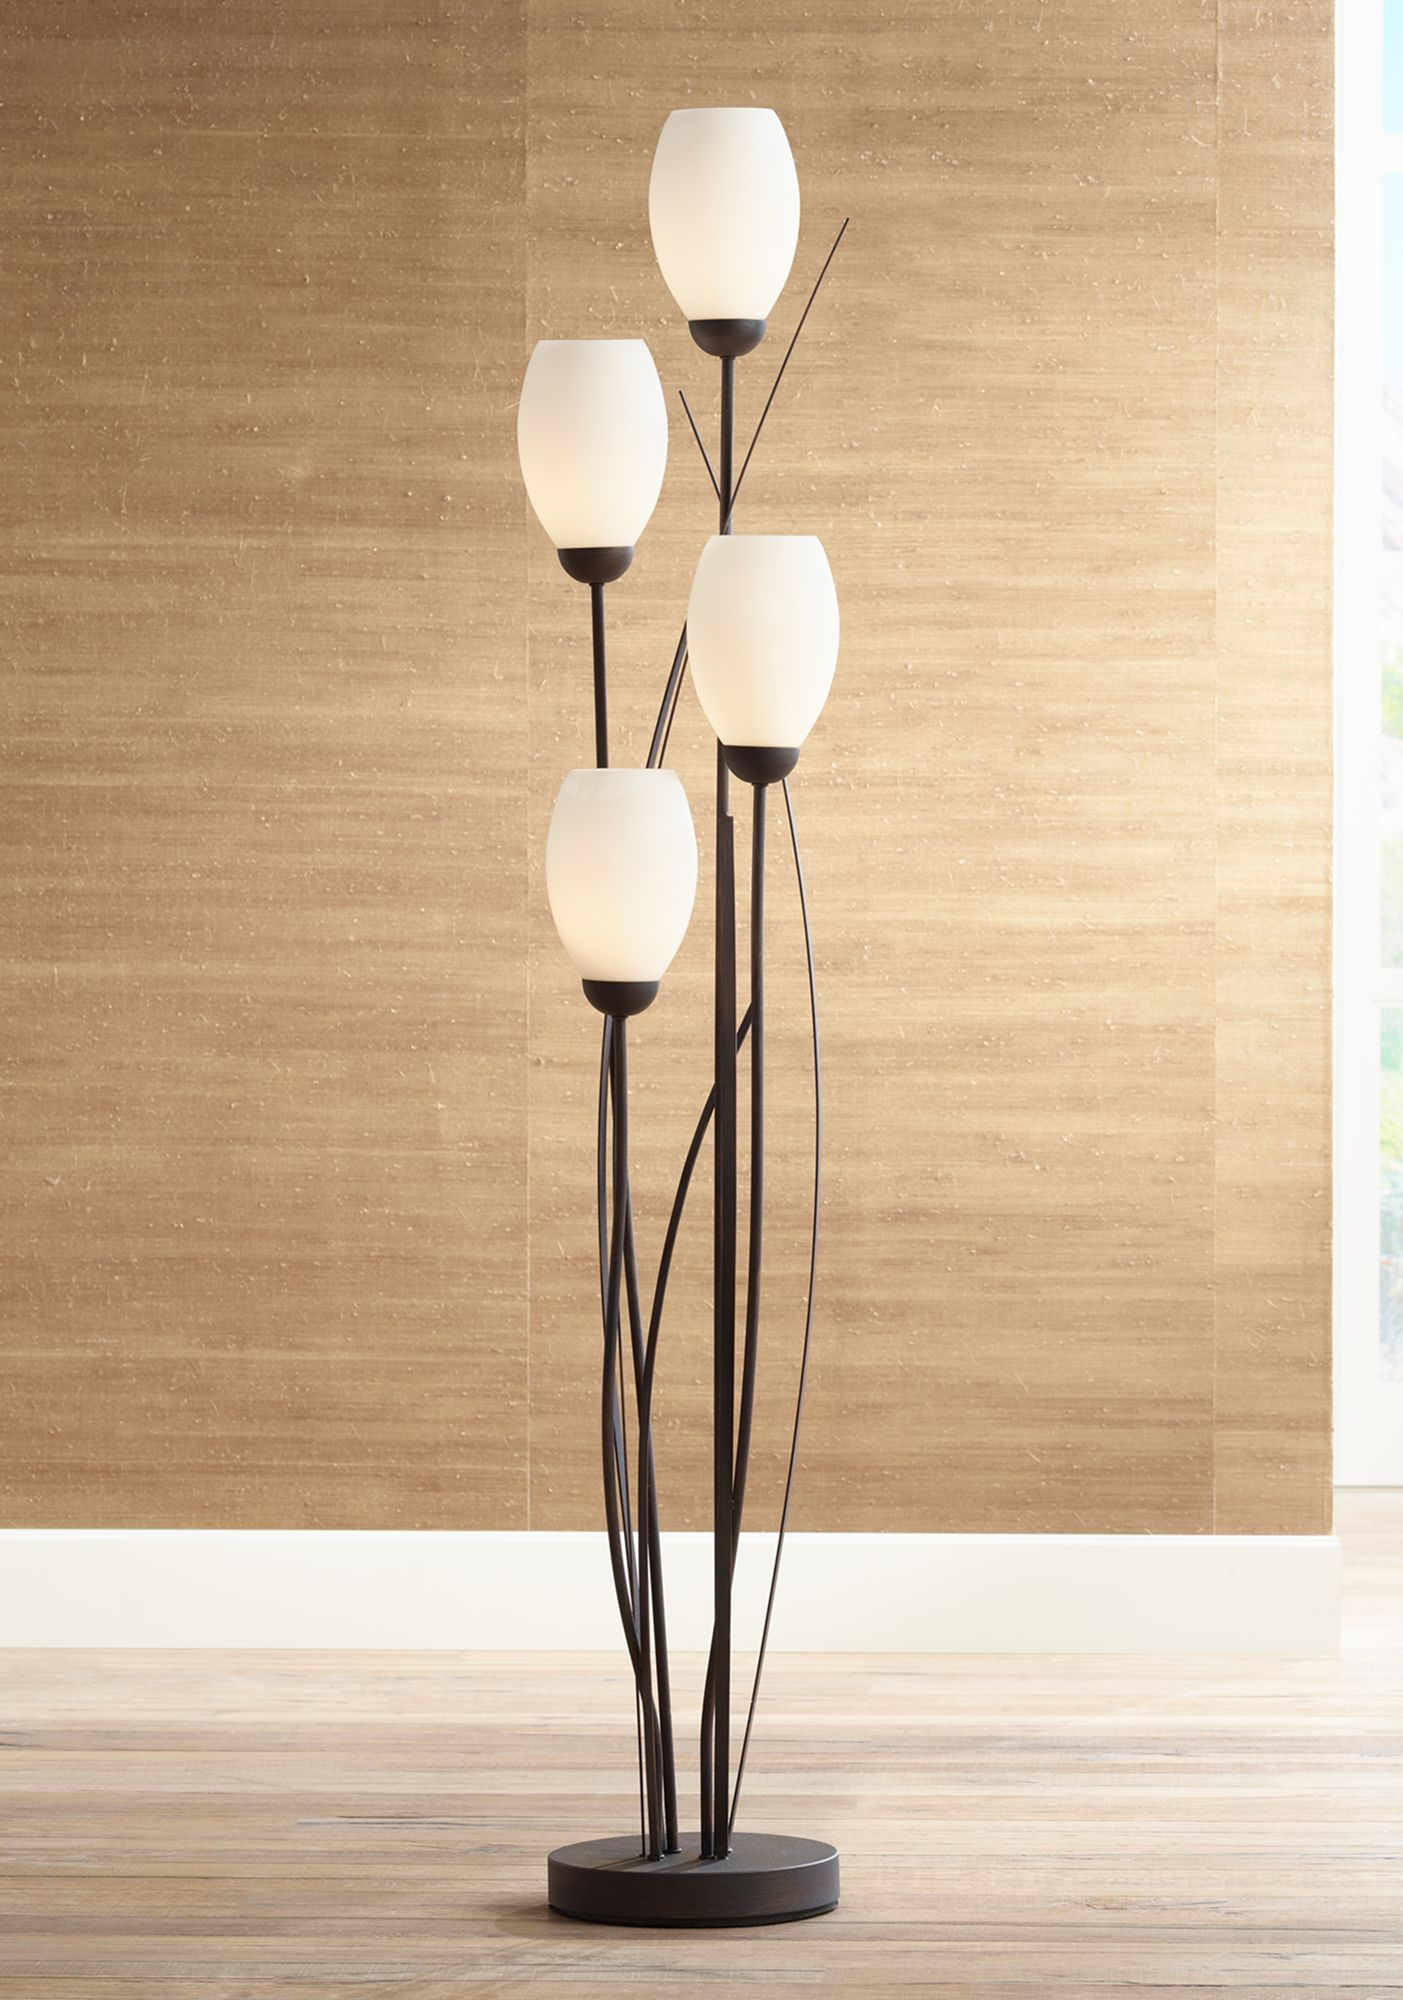 Use of floor lamps